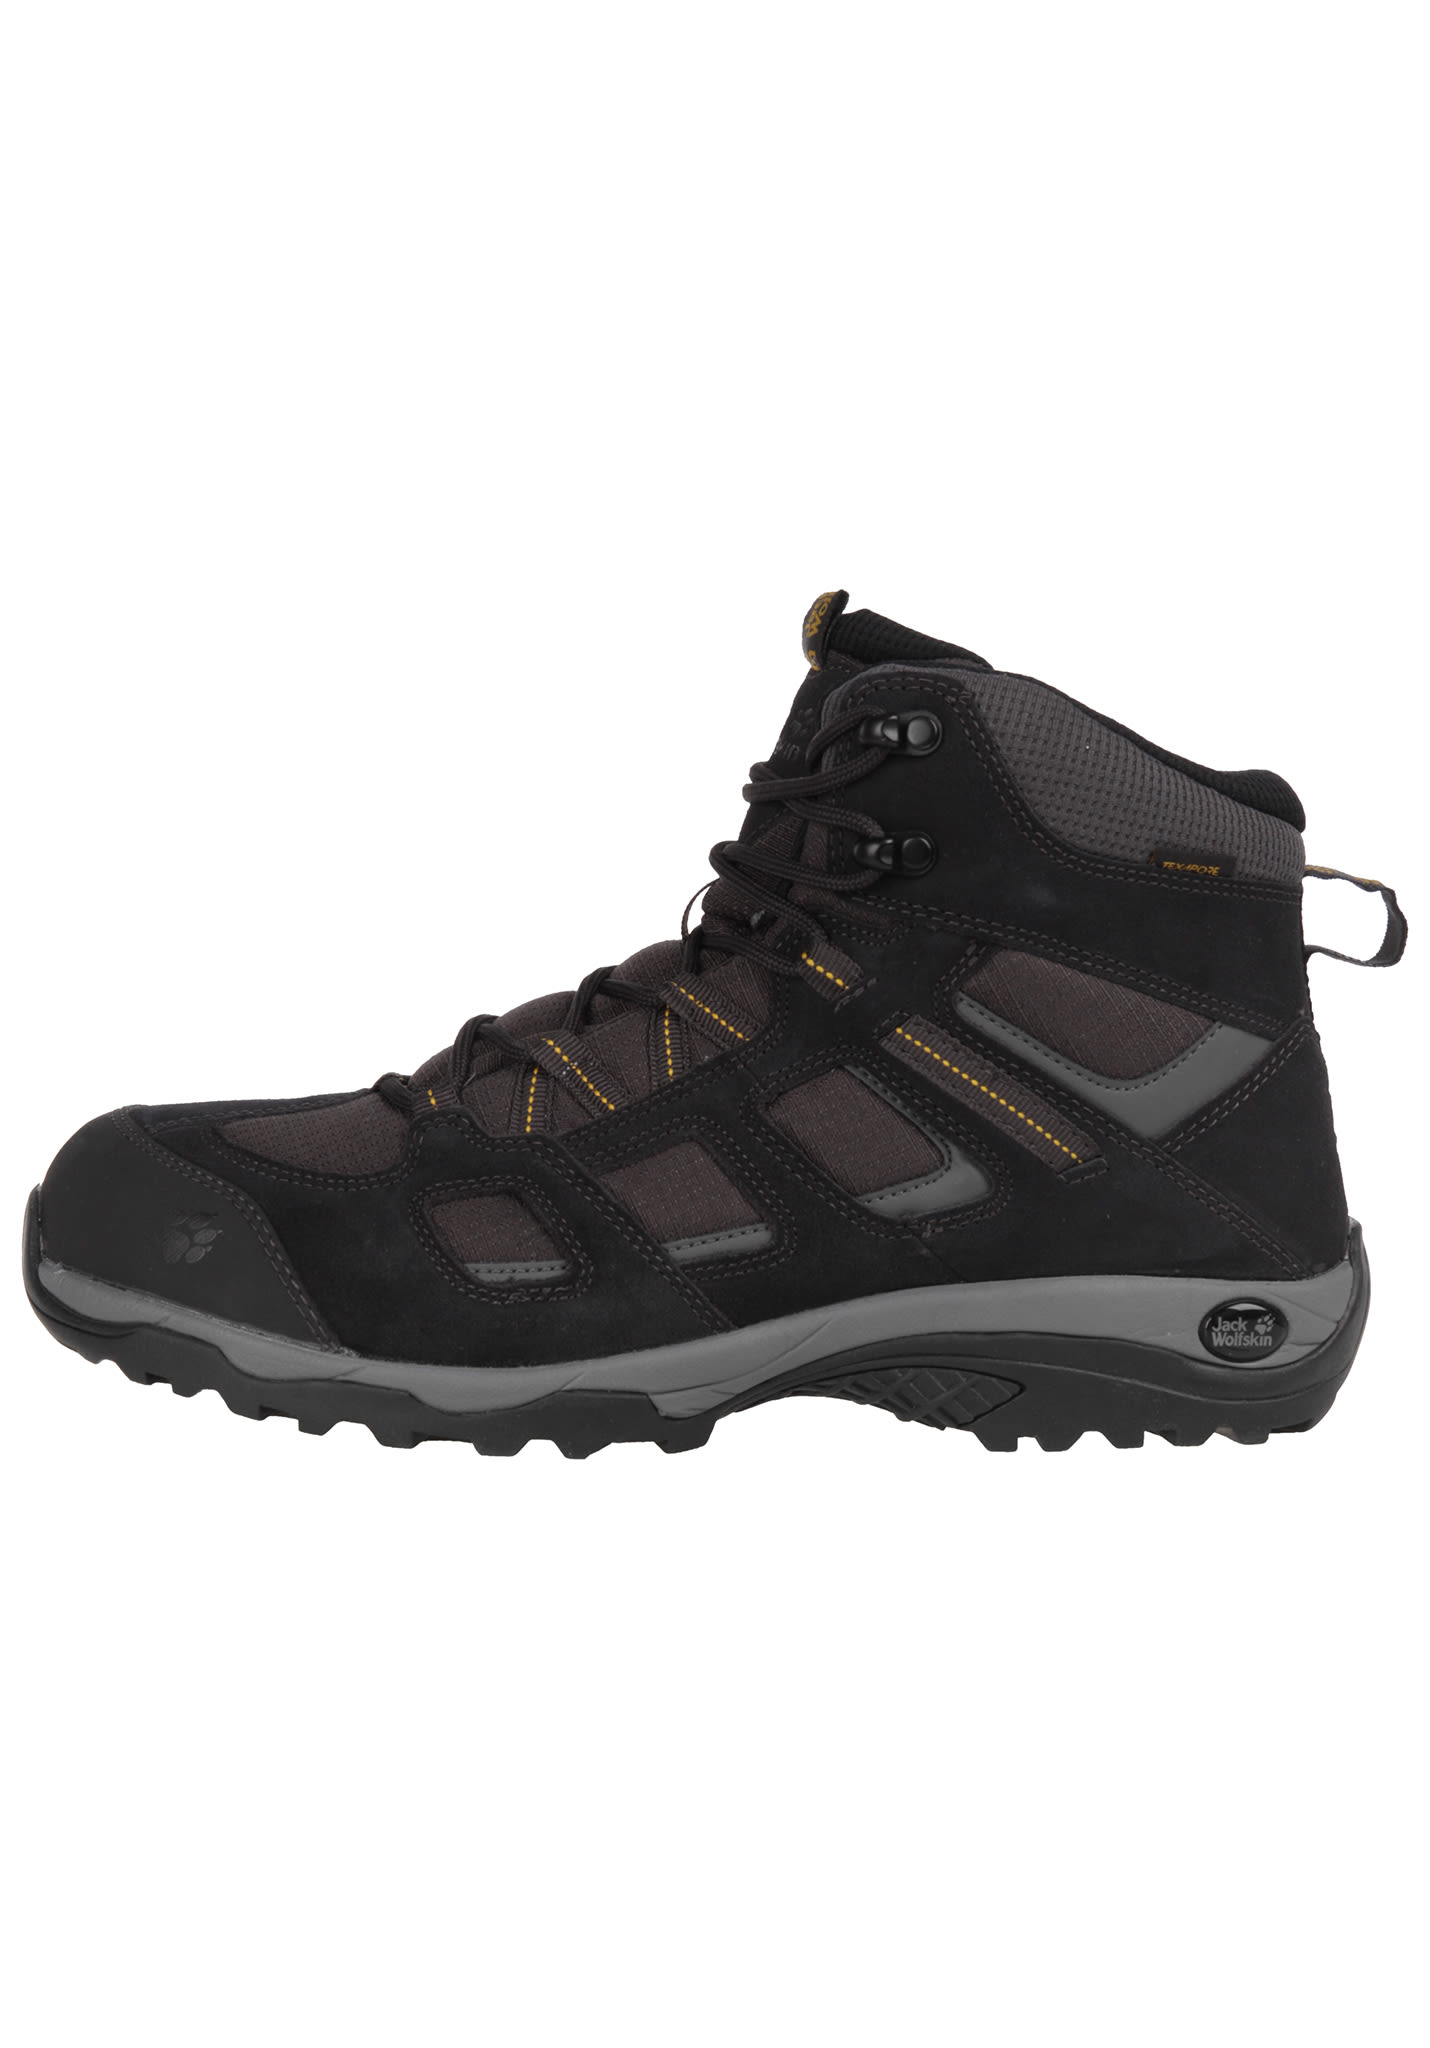 35ca3d1e59b332 Jack Wolfskin Vojo Hike 2 Texaporeid - Trekking Shoes for Men - Black -  Planet Sports